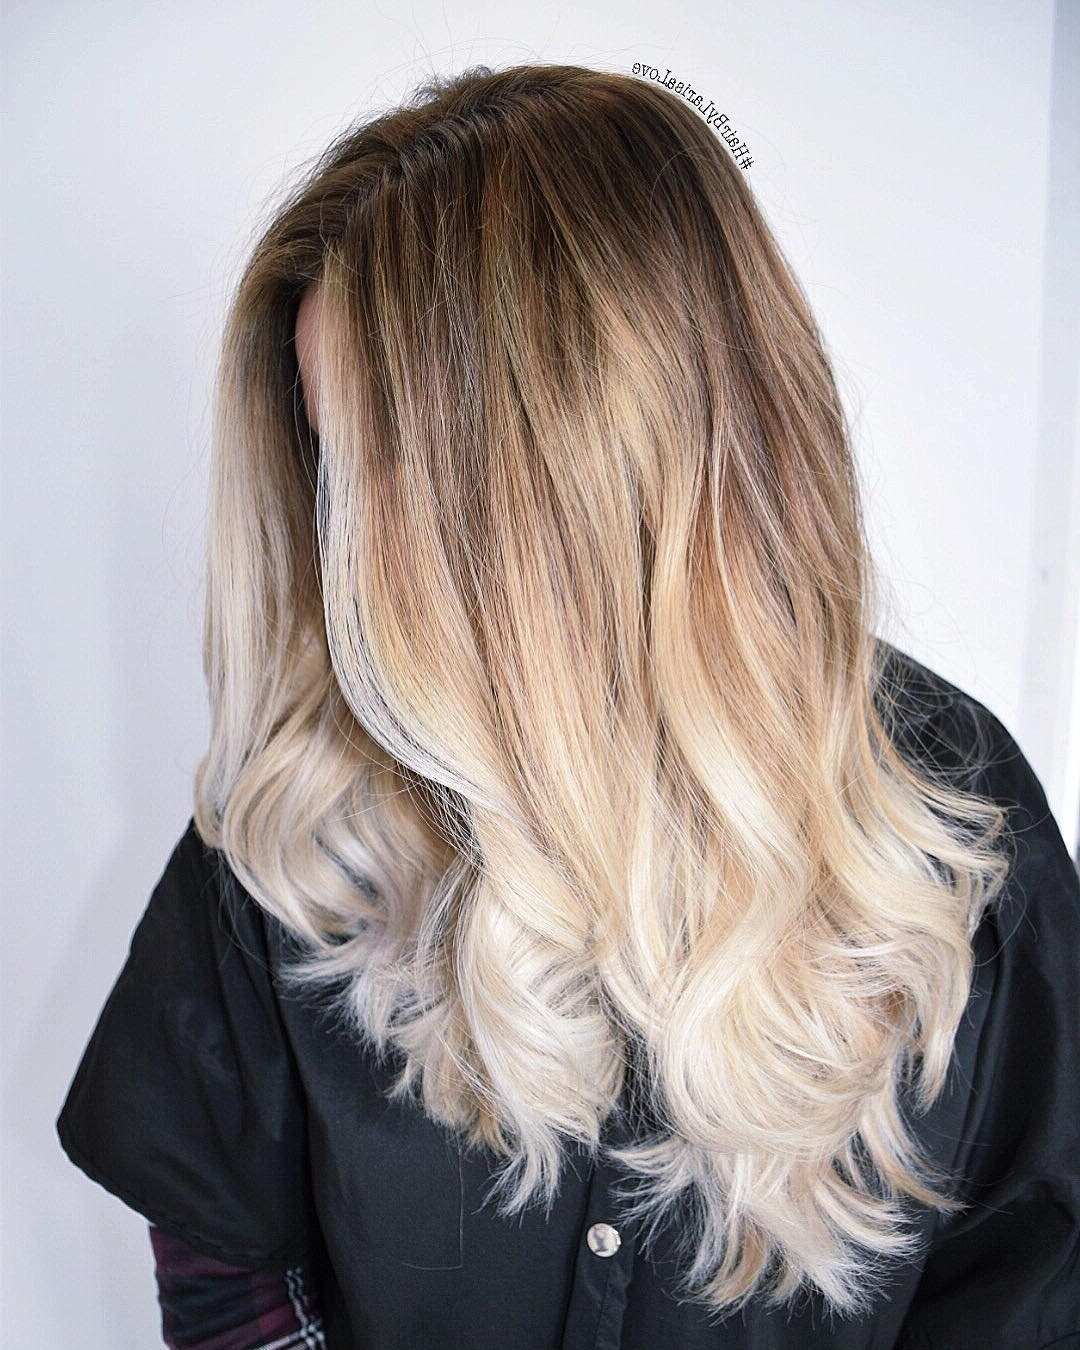 20 Perfect Ways To Get Beach Waves In Your Hair {2018 Update} Within Popular Blonde Ponytail Hairstyles With Beach Waves (View 3 of 20)